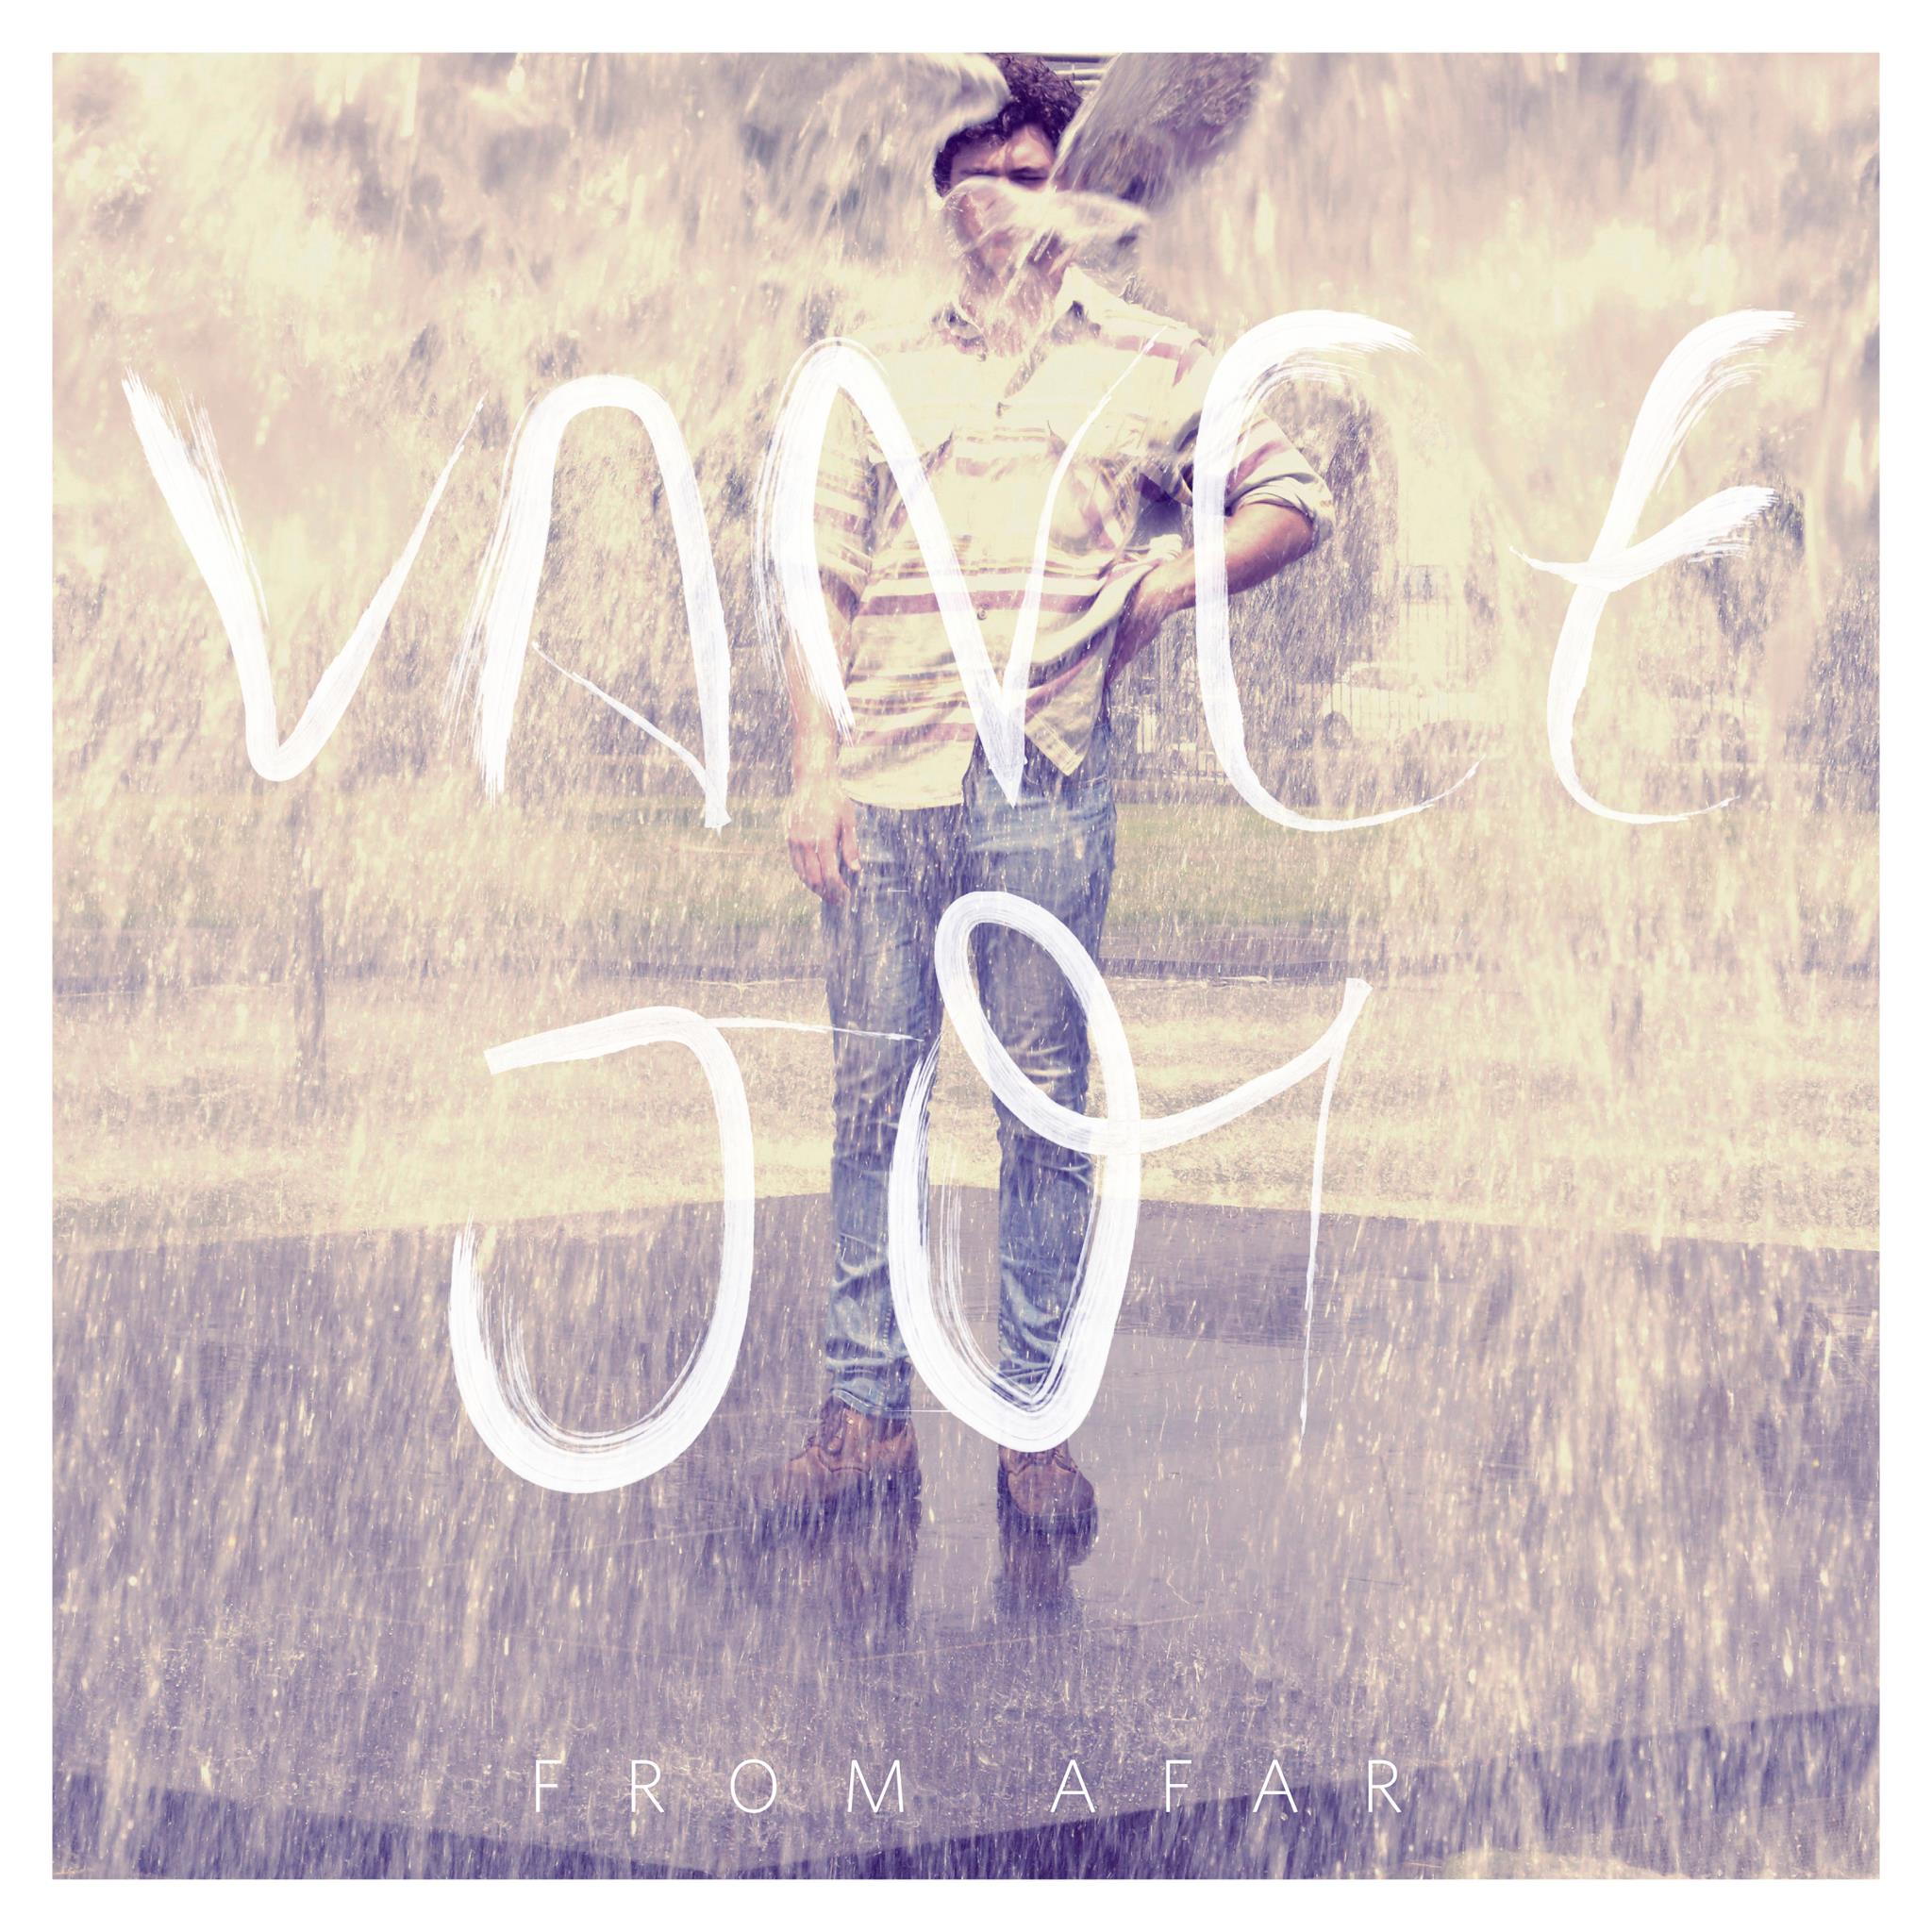 SXSW 2013 Showcasing Artist of The Day: Vance Joy